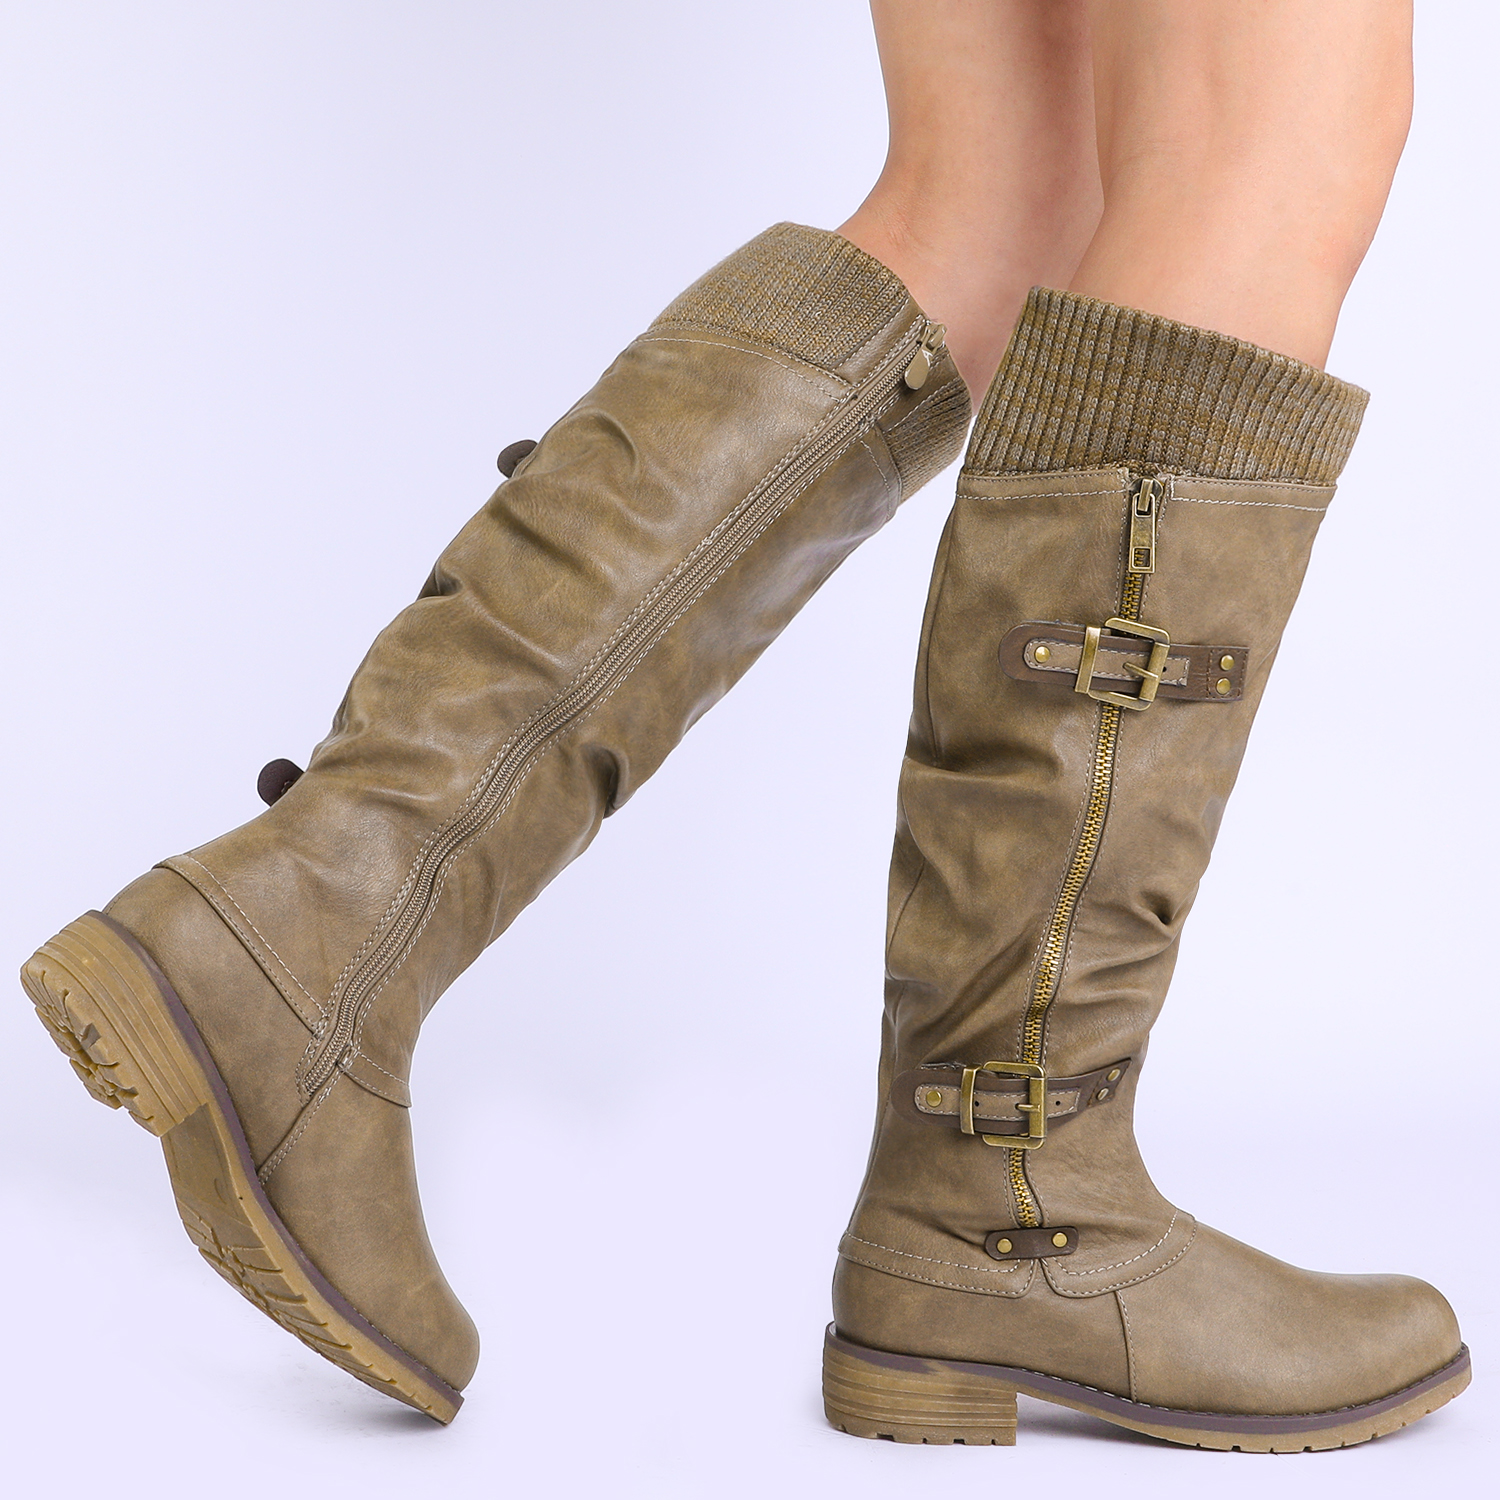 DREAM-PAIRS-Womens-DEPP-Cowgirl-Soft-PU-Leather-Combat-Knee-High-Riding-Boots thumbnail 31